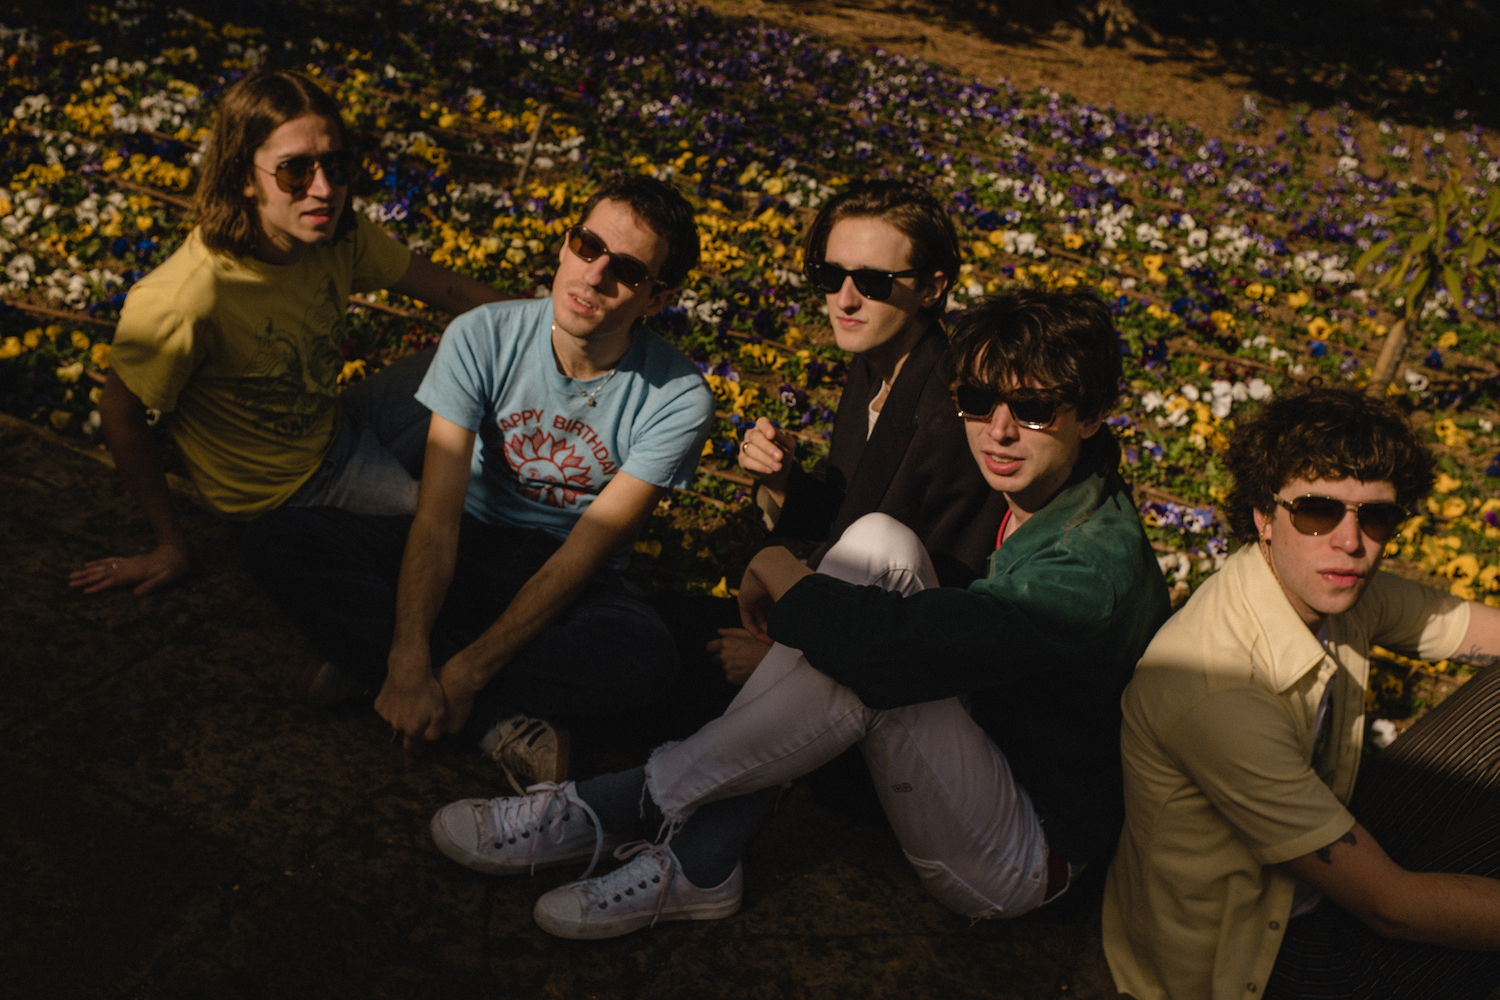 'We realised we didn't want to make a record for the critics': Swim Deep on new album Emerald Classics